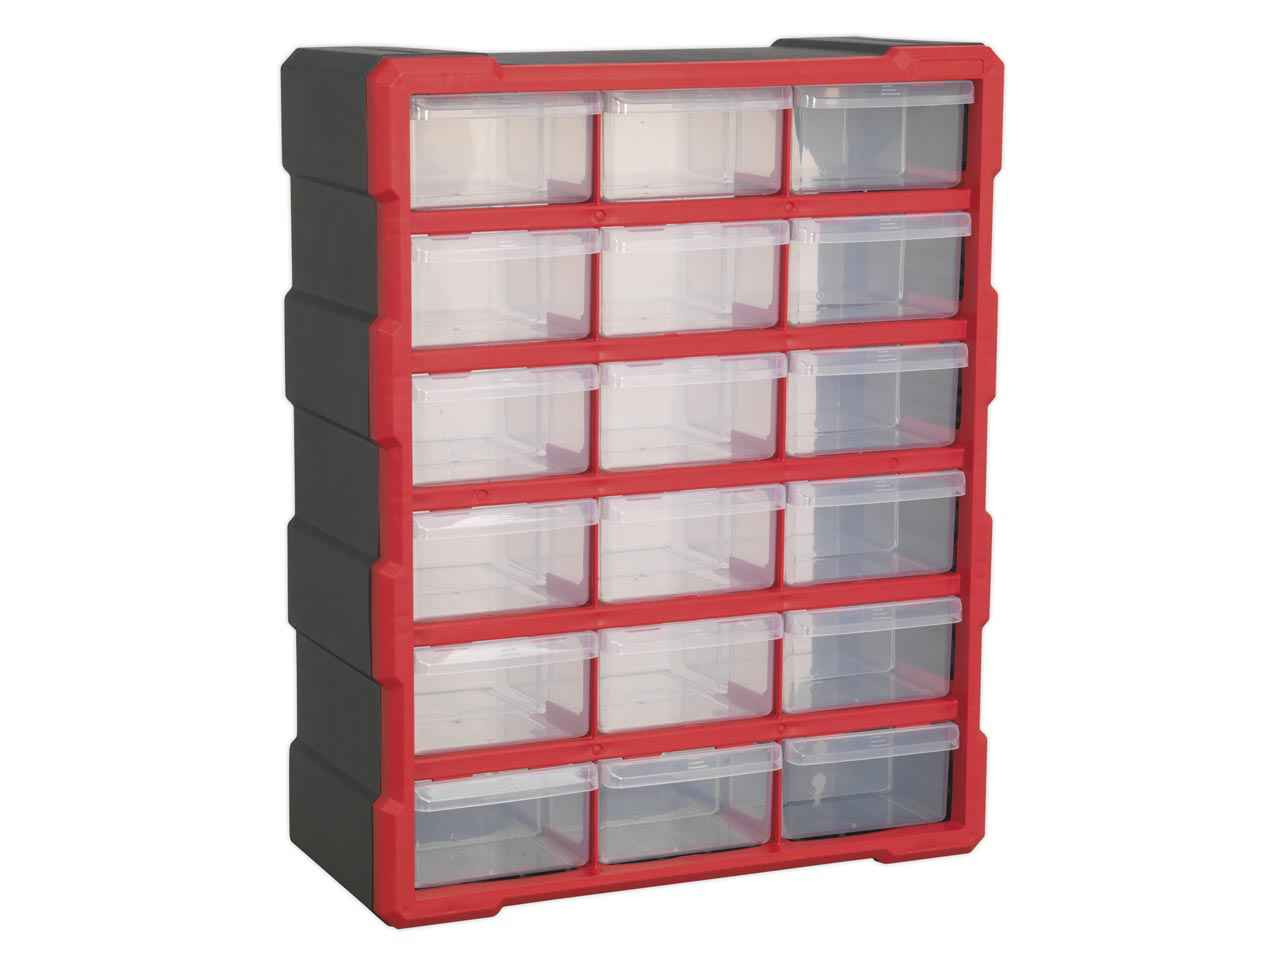 Sealey APDC18R Cabinet Box 18 Drawer - Red/Black